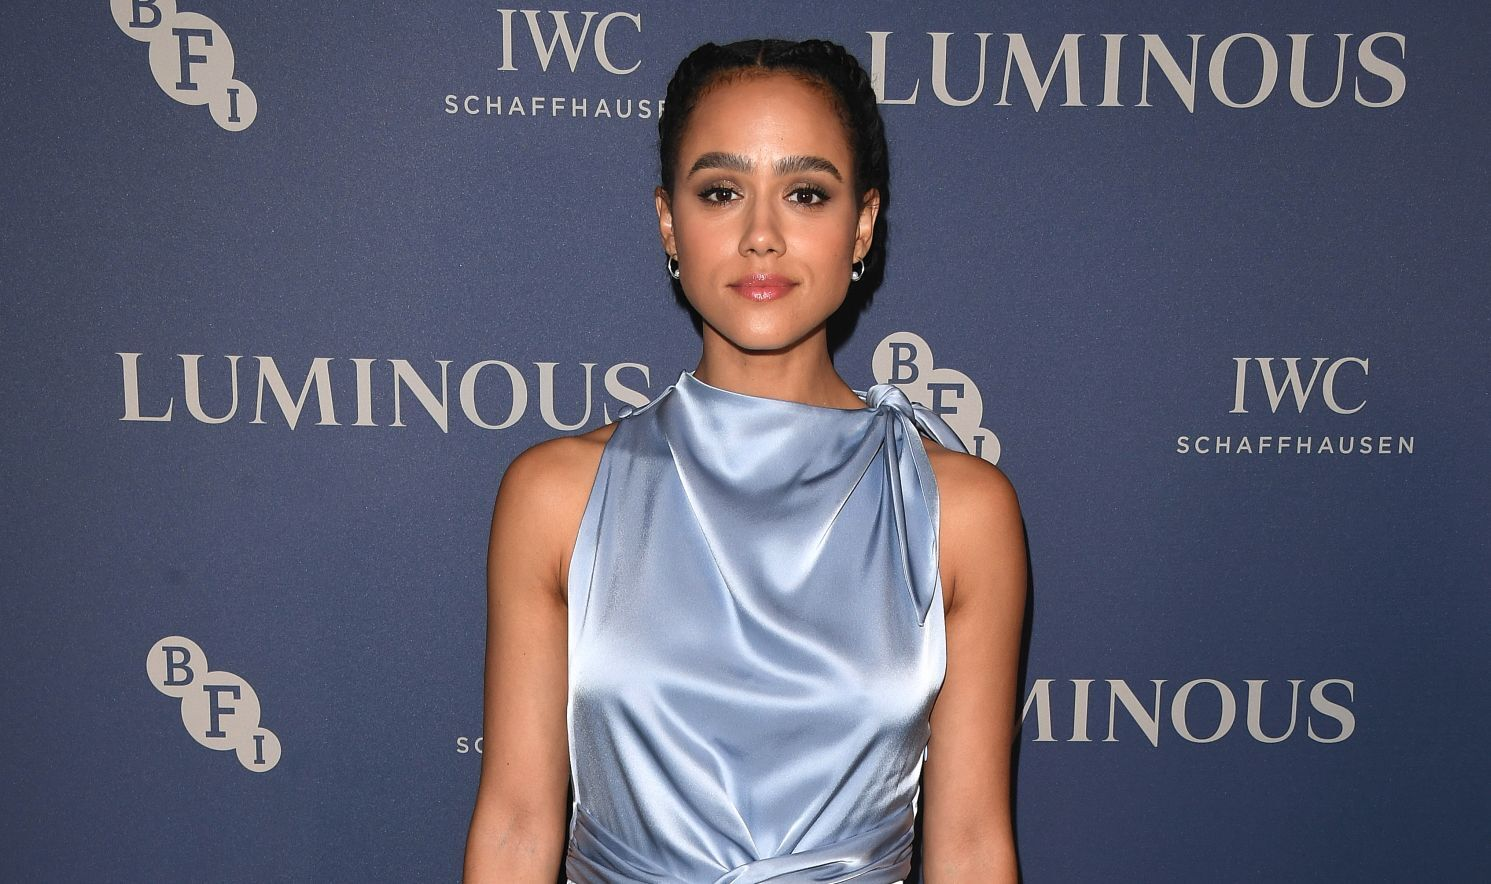 Nathalie Emmanuel joins Kevin Hart and John Travolta in new Quibi show